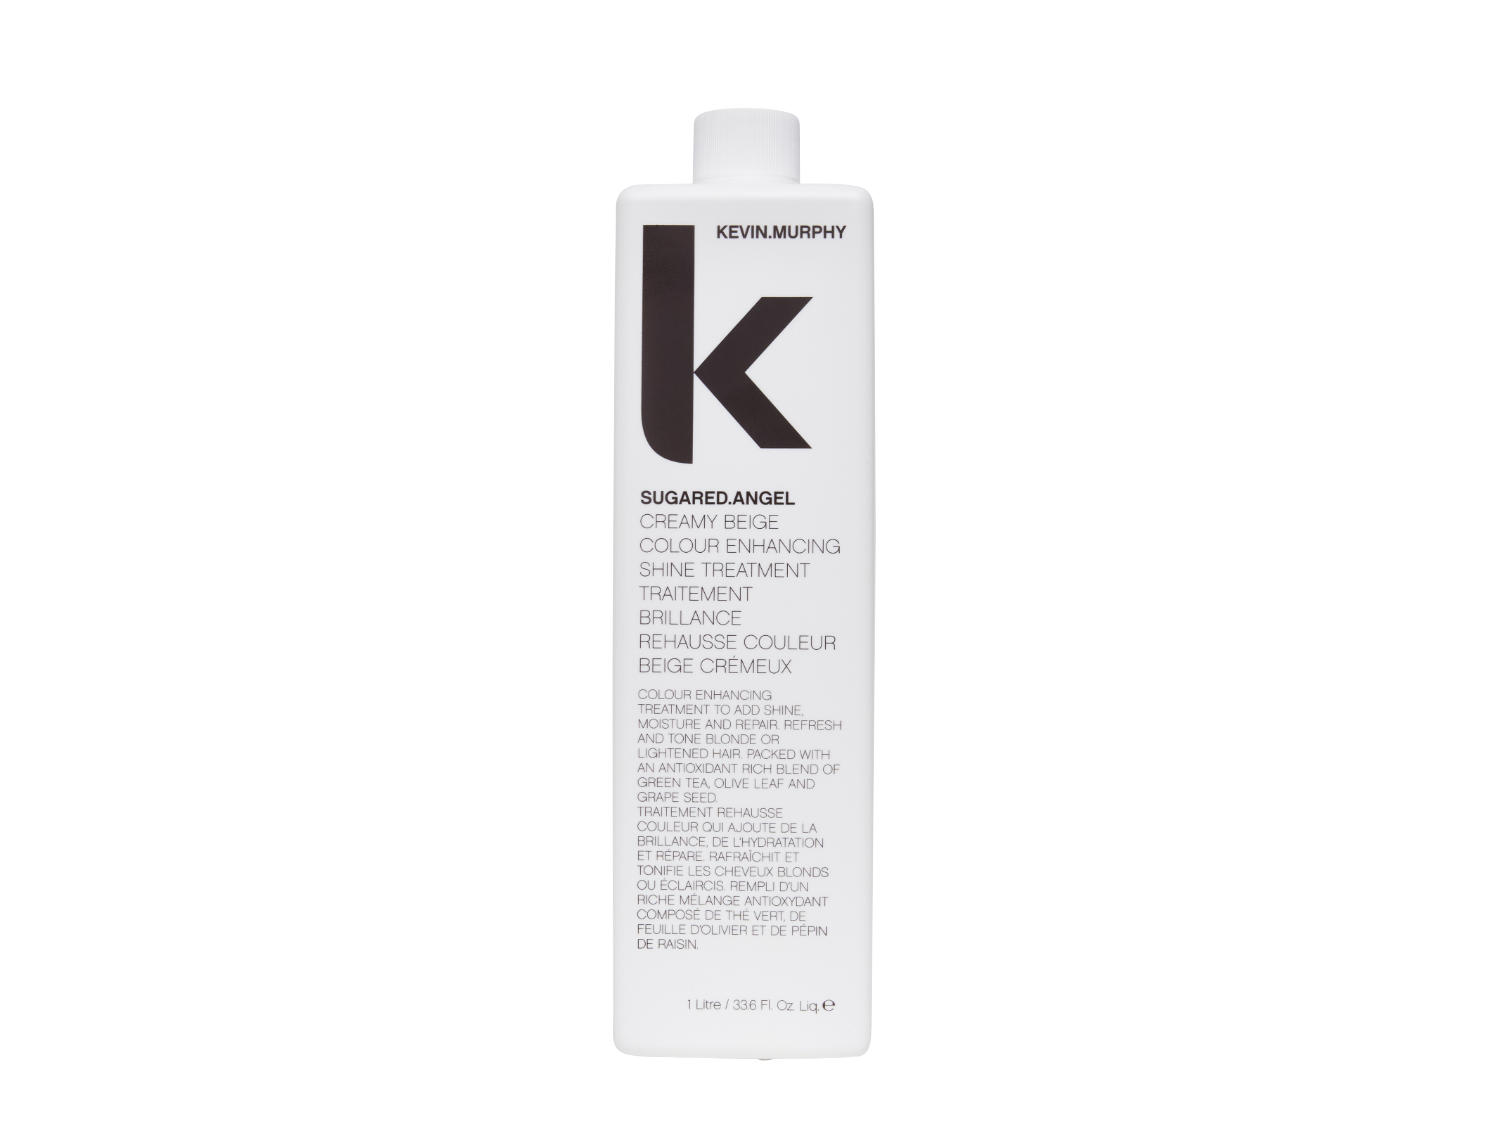 Arma Beauty - Kevin Murphy - SUGARED.ANGEL